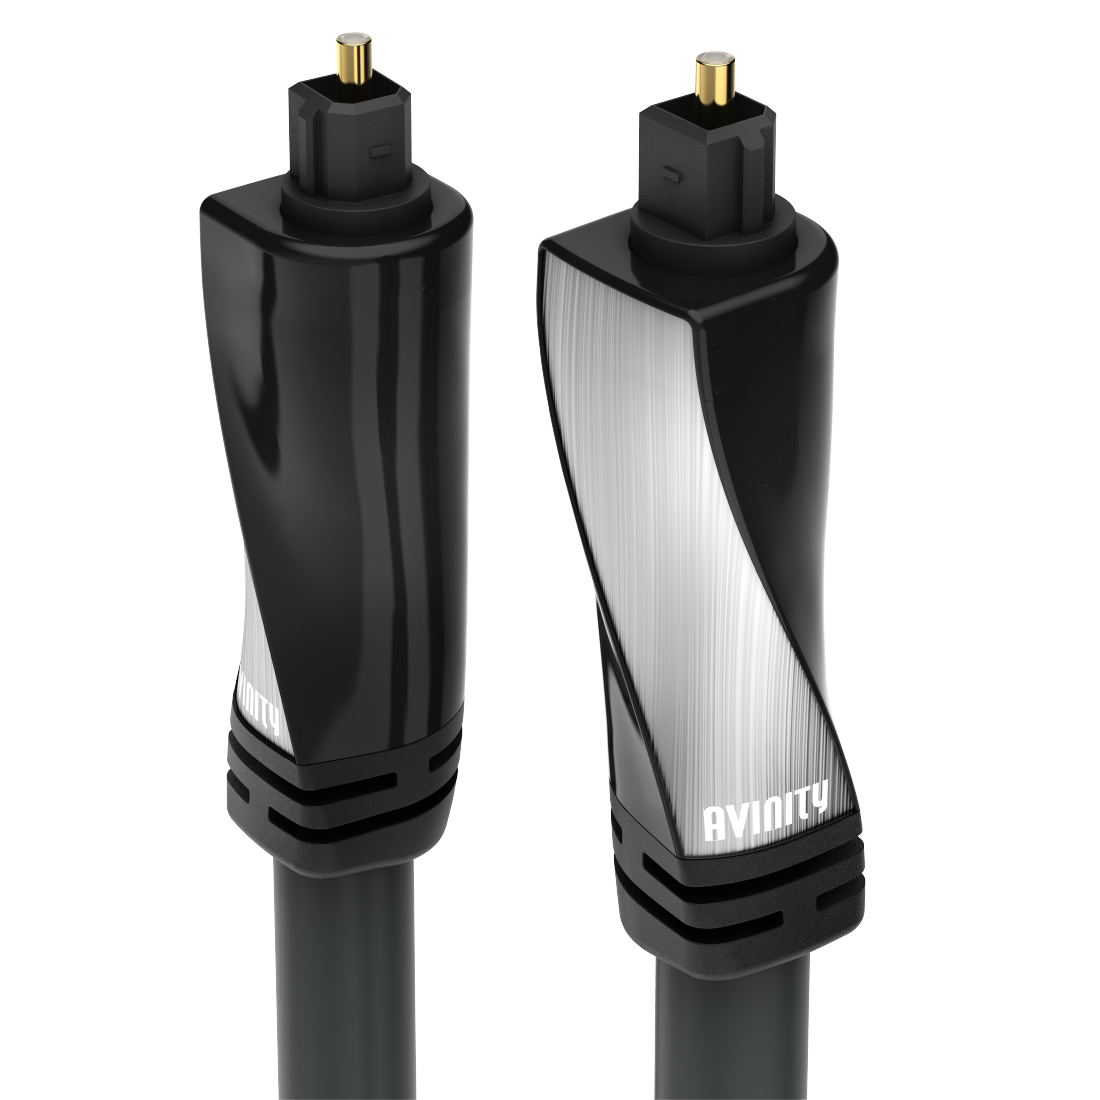 abx High-Res Image - Avinity, Audio Optical Fibre Cable, ODT plug (Toslink), polished, 3 m